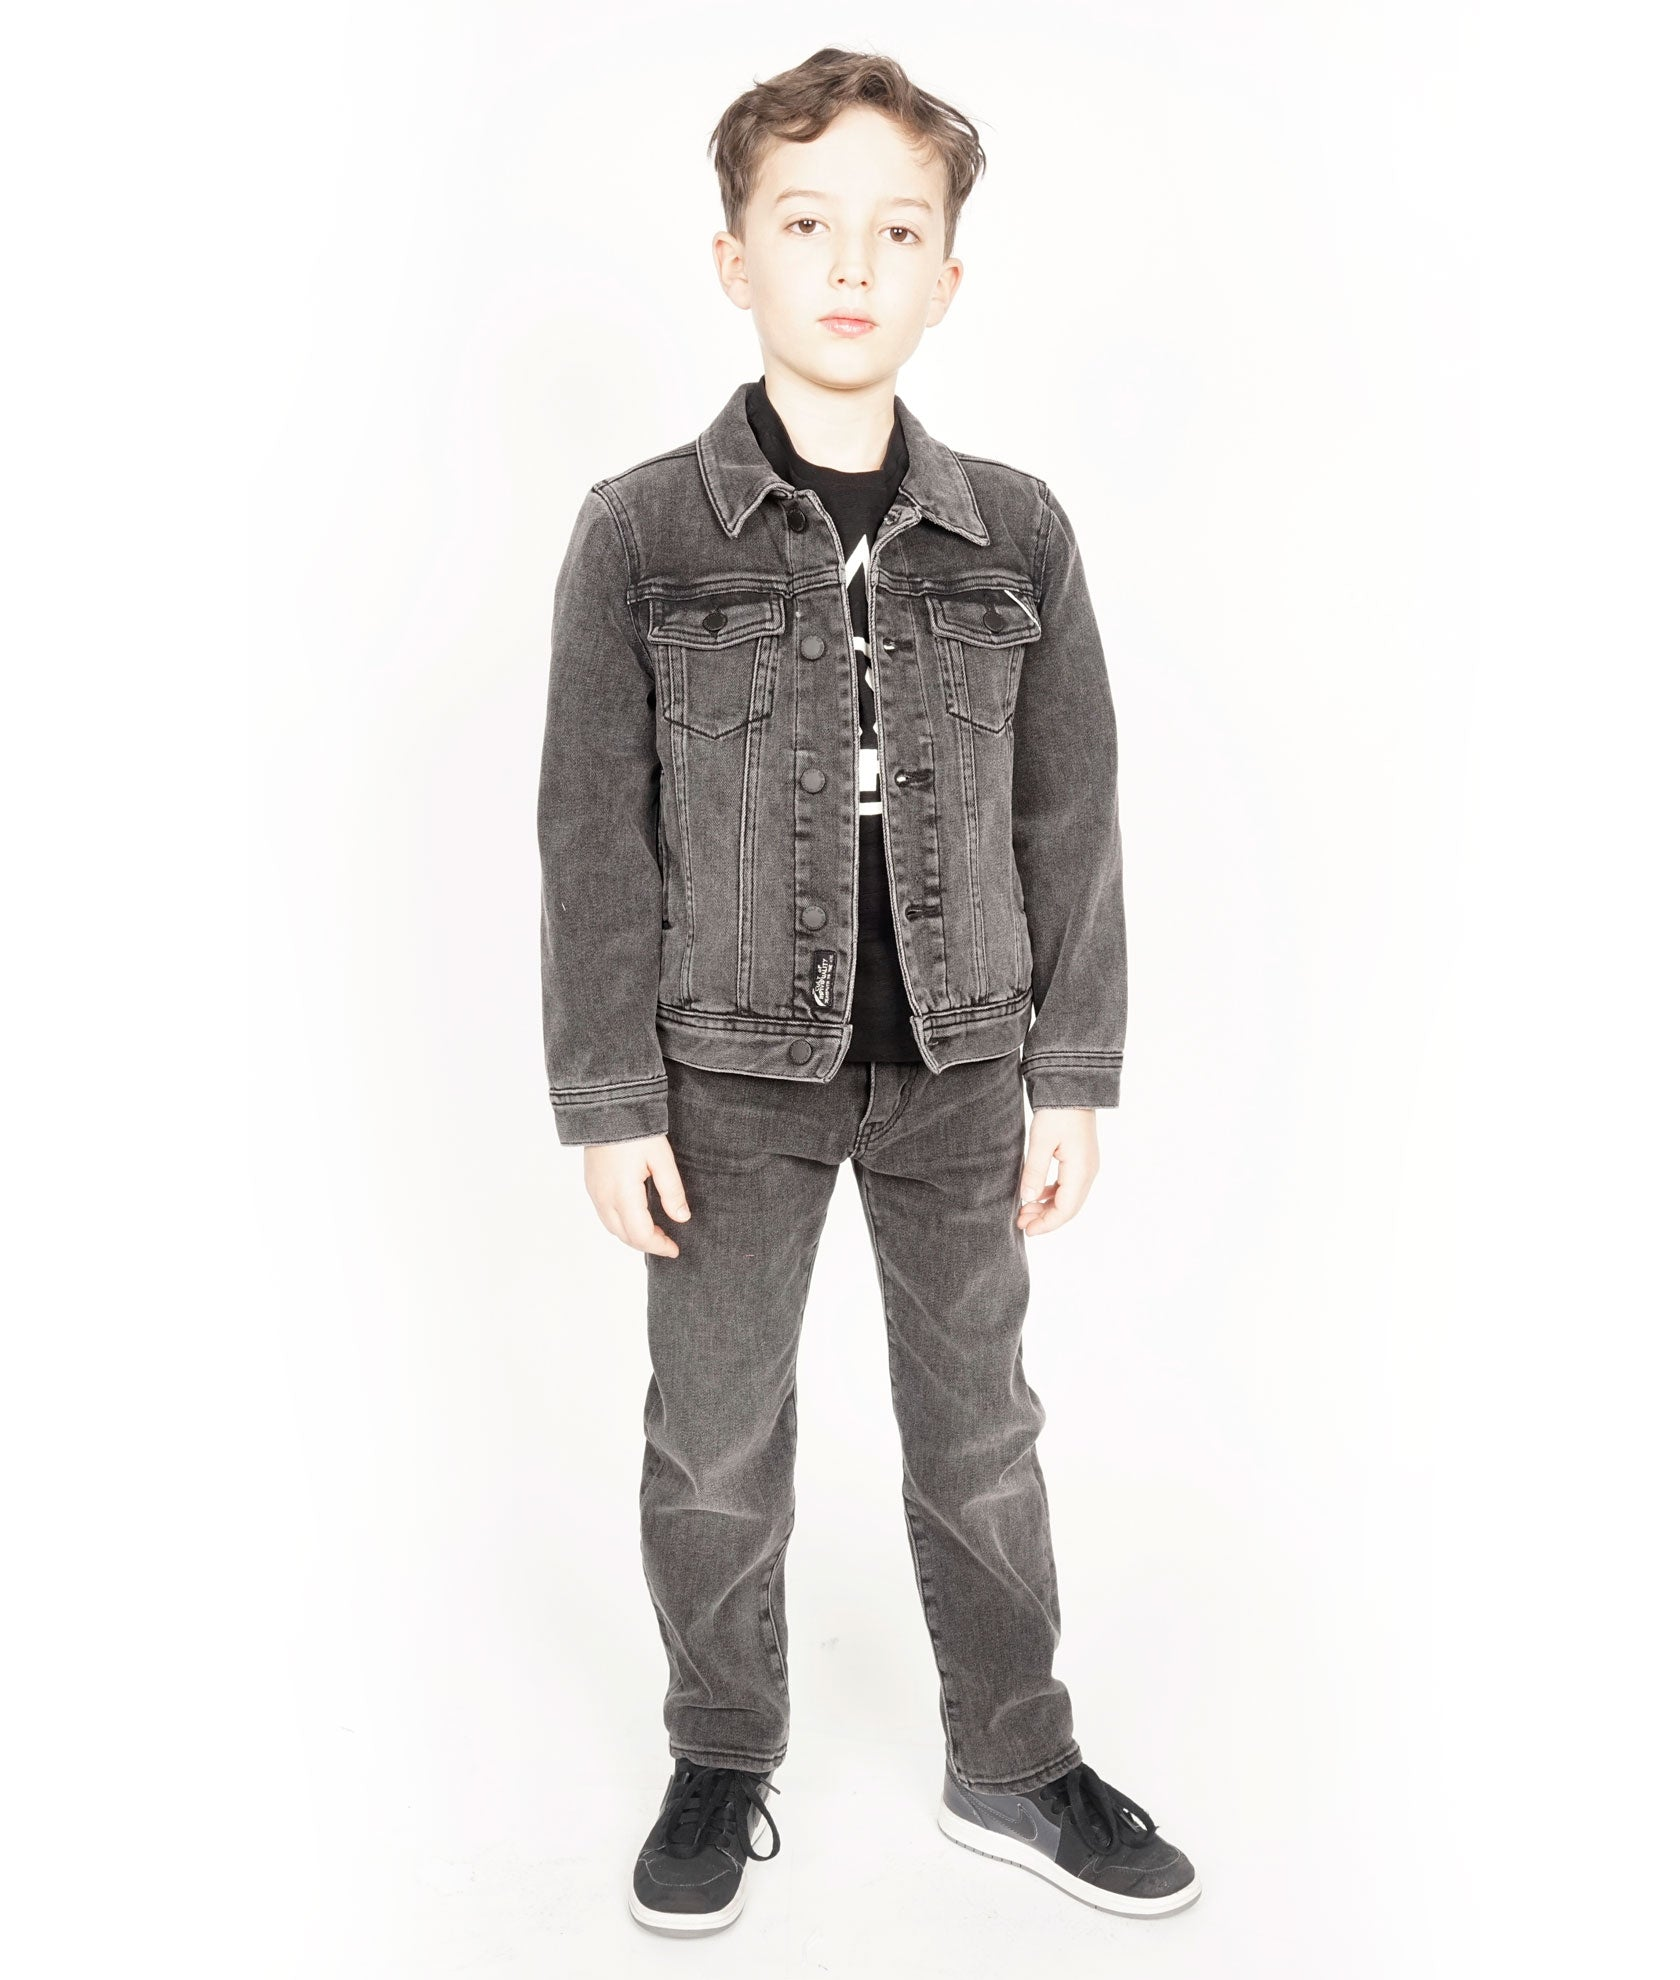 Cult of IndividualityKid's Denim Jacket Stretch in Vintage Black6/7